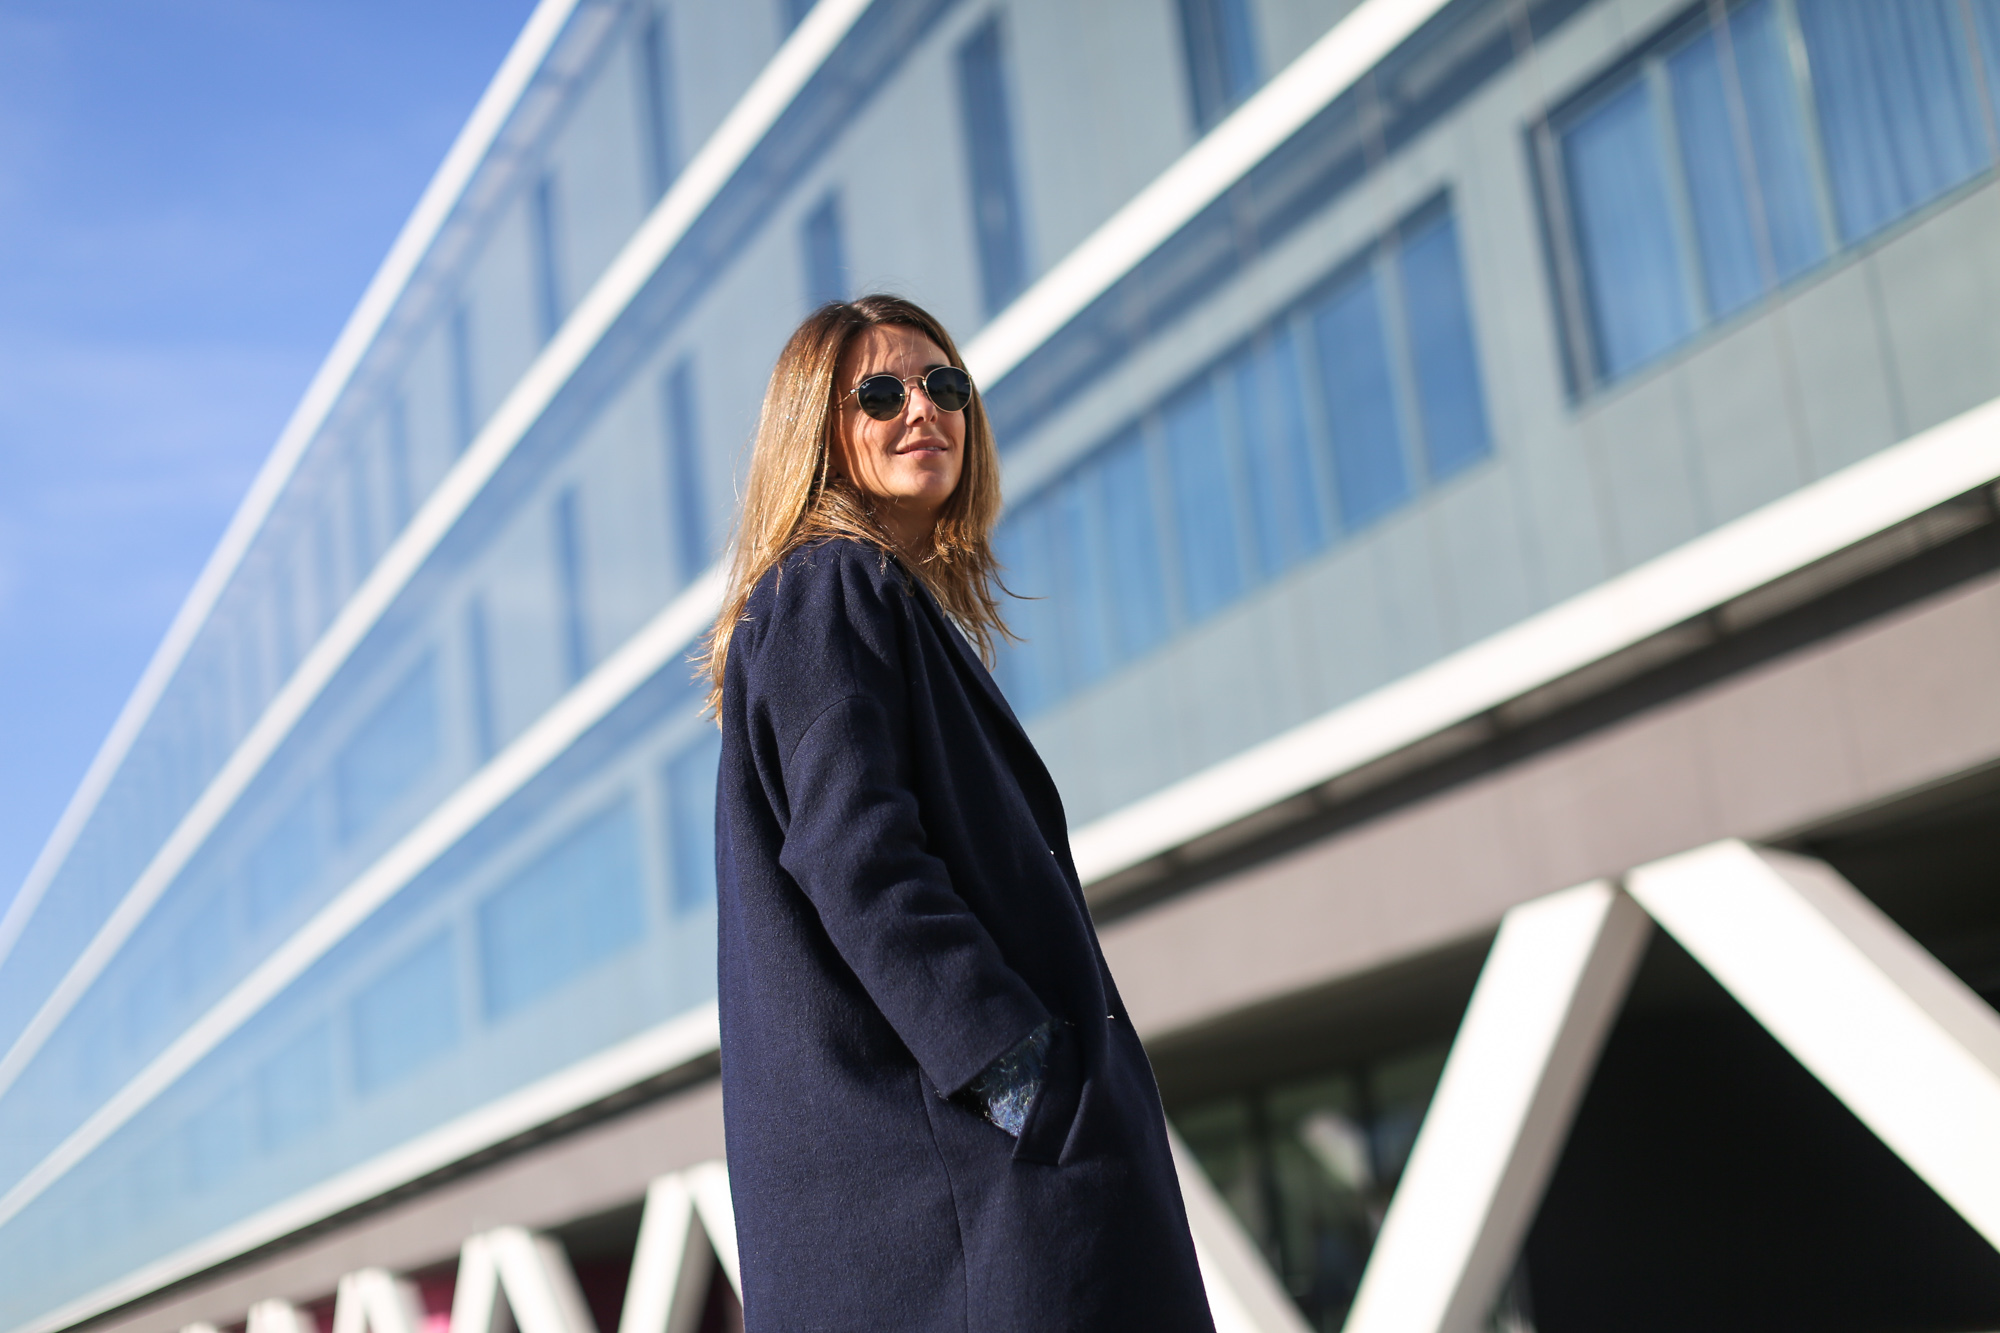 Clochet_streetstyle_masscob_navy_coat_trimmer_bilbao_acne_pop_jeans-9